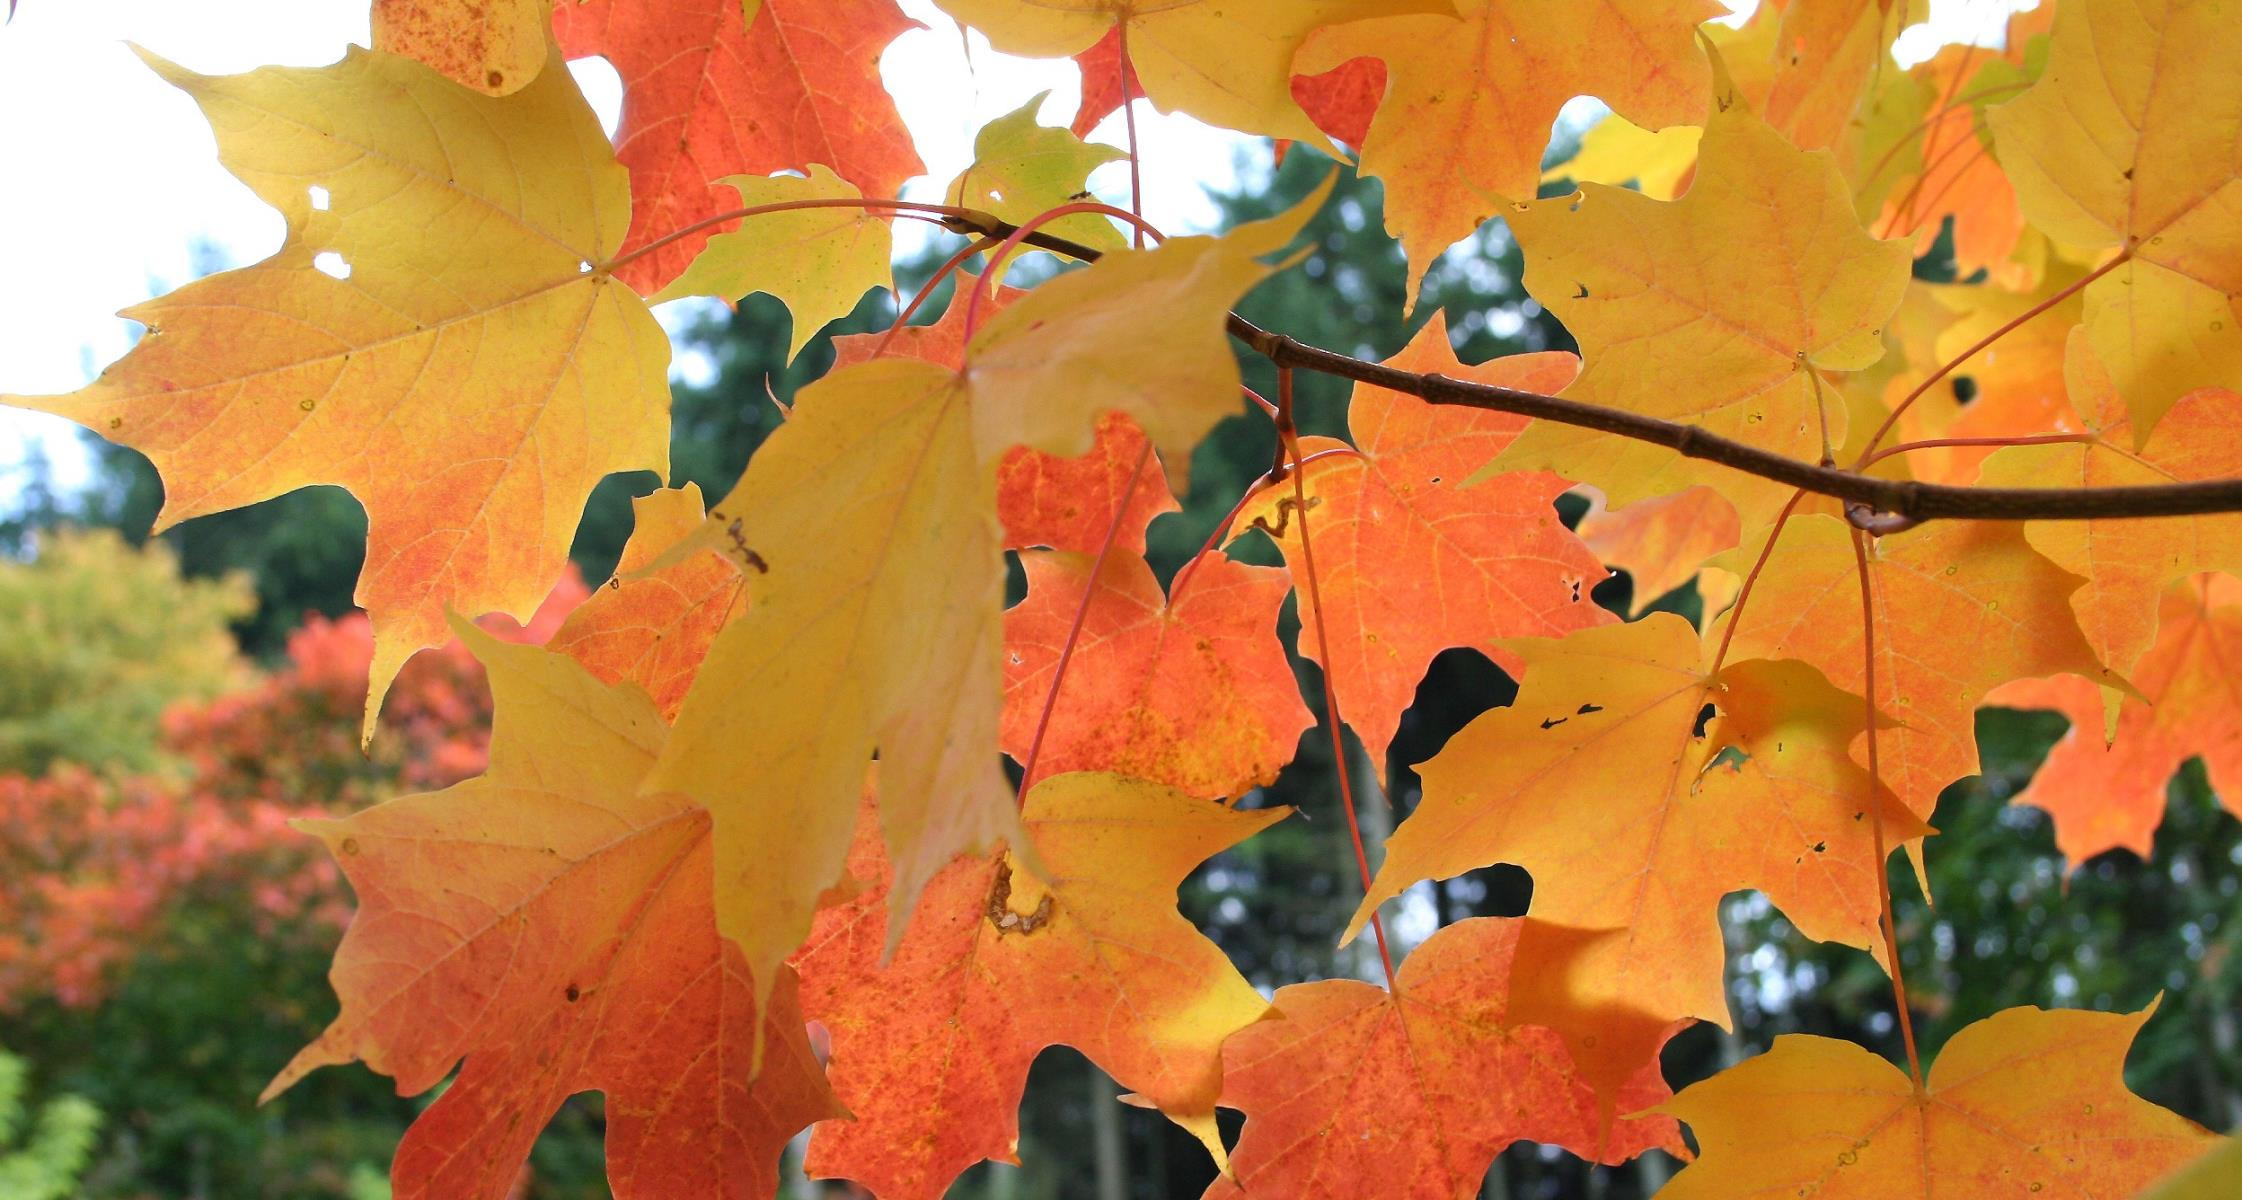 #TeachingTuesday: Sugar Maple